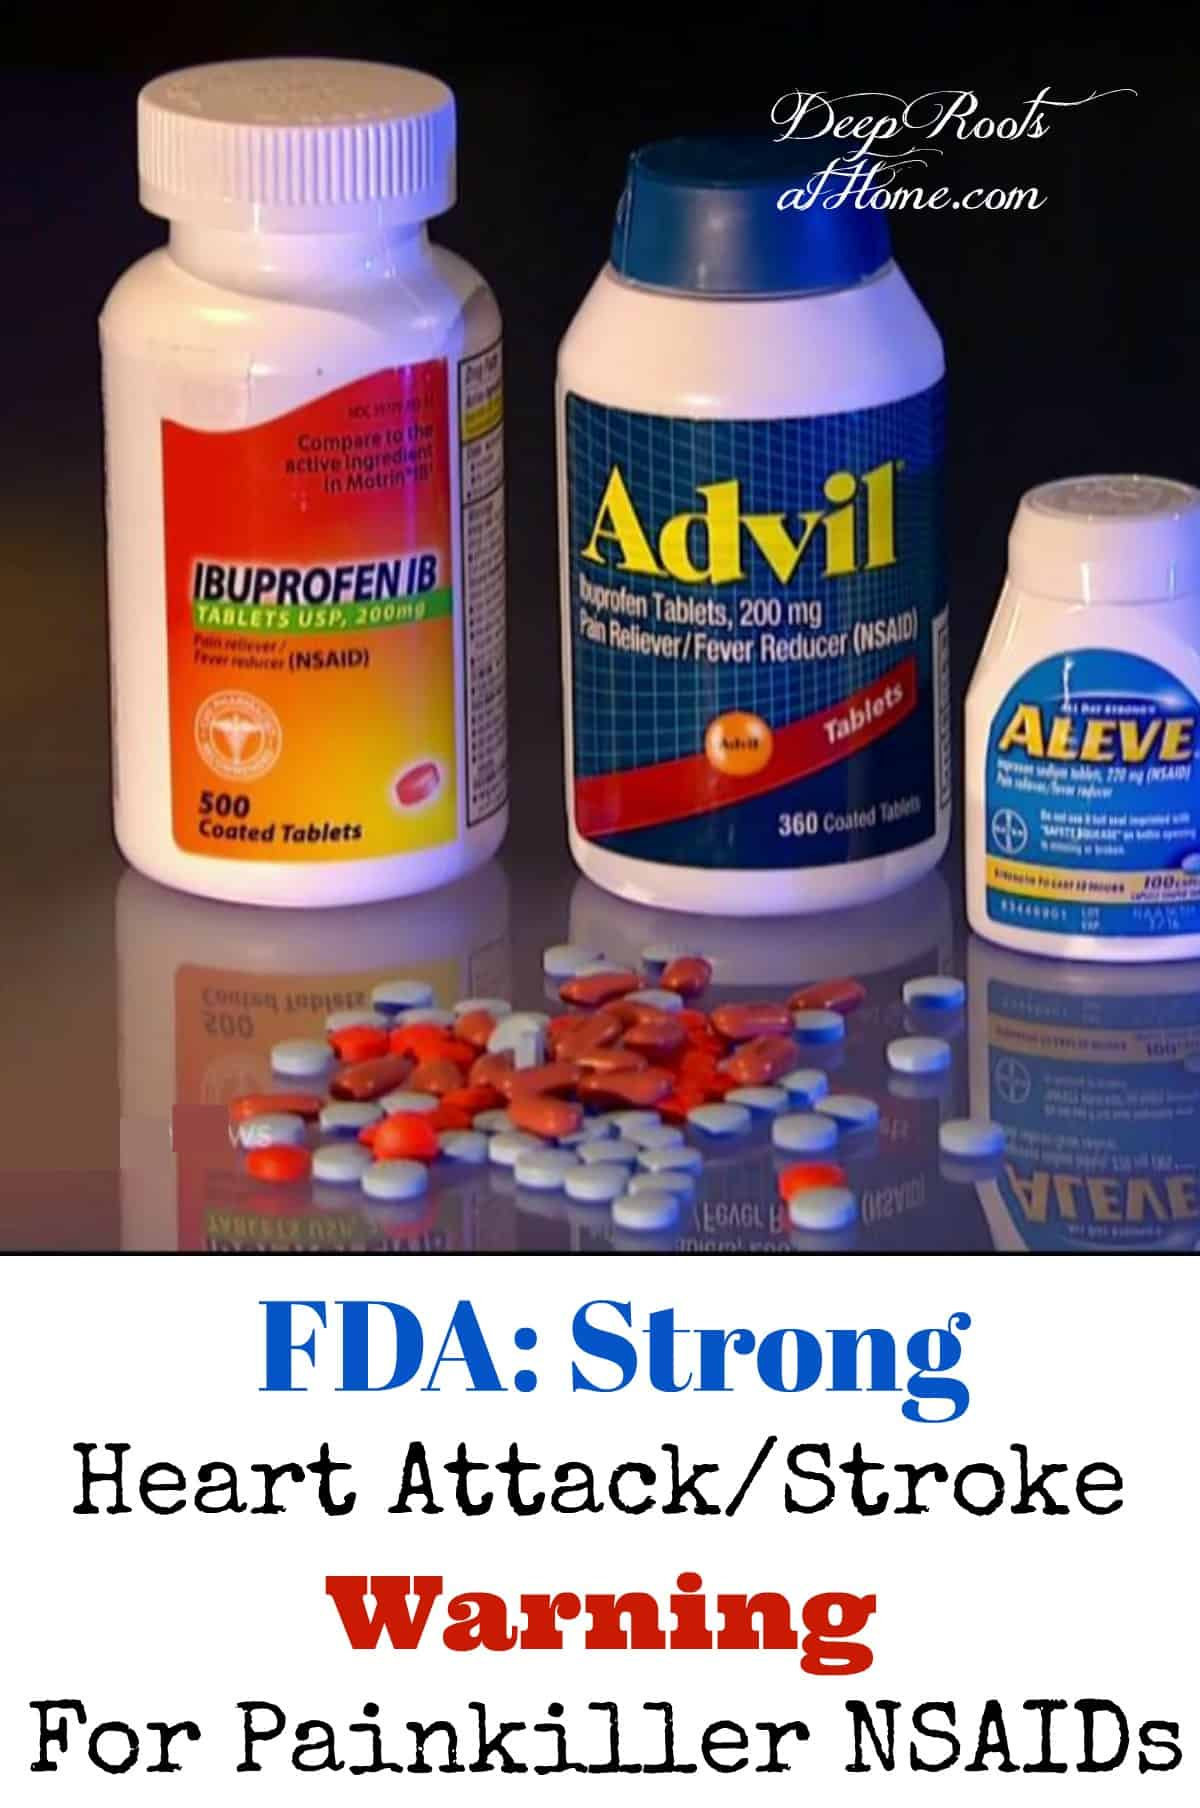 FDA: Strong Heart Attack/Stroke Warning For Painkiller NSAIDs.